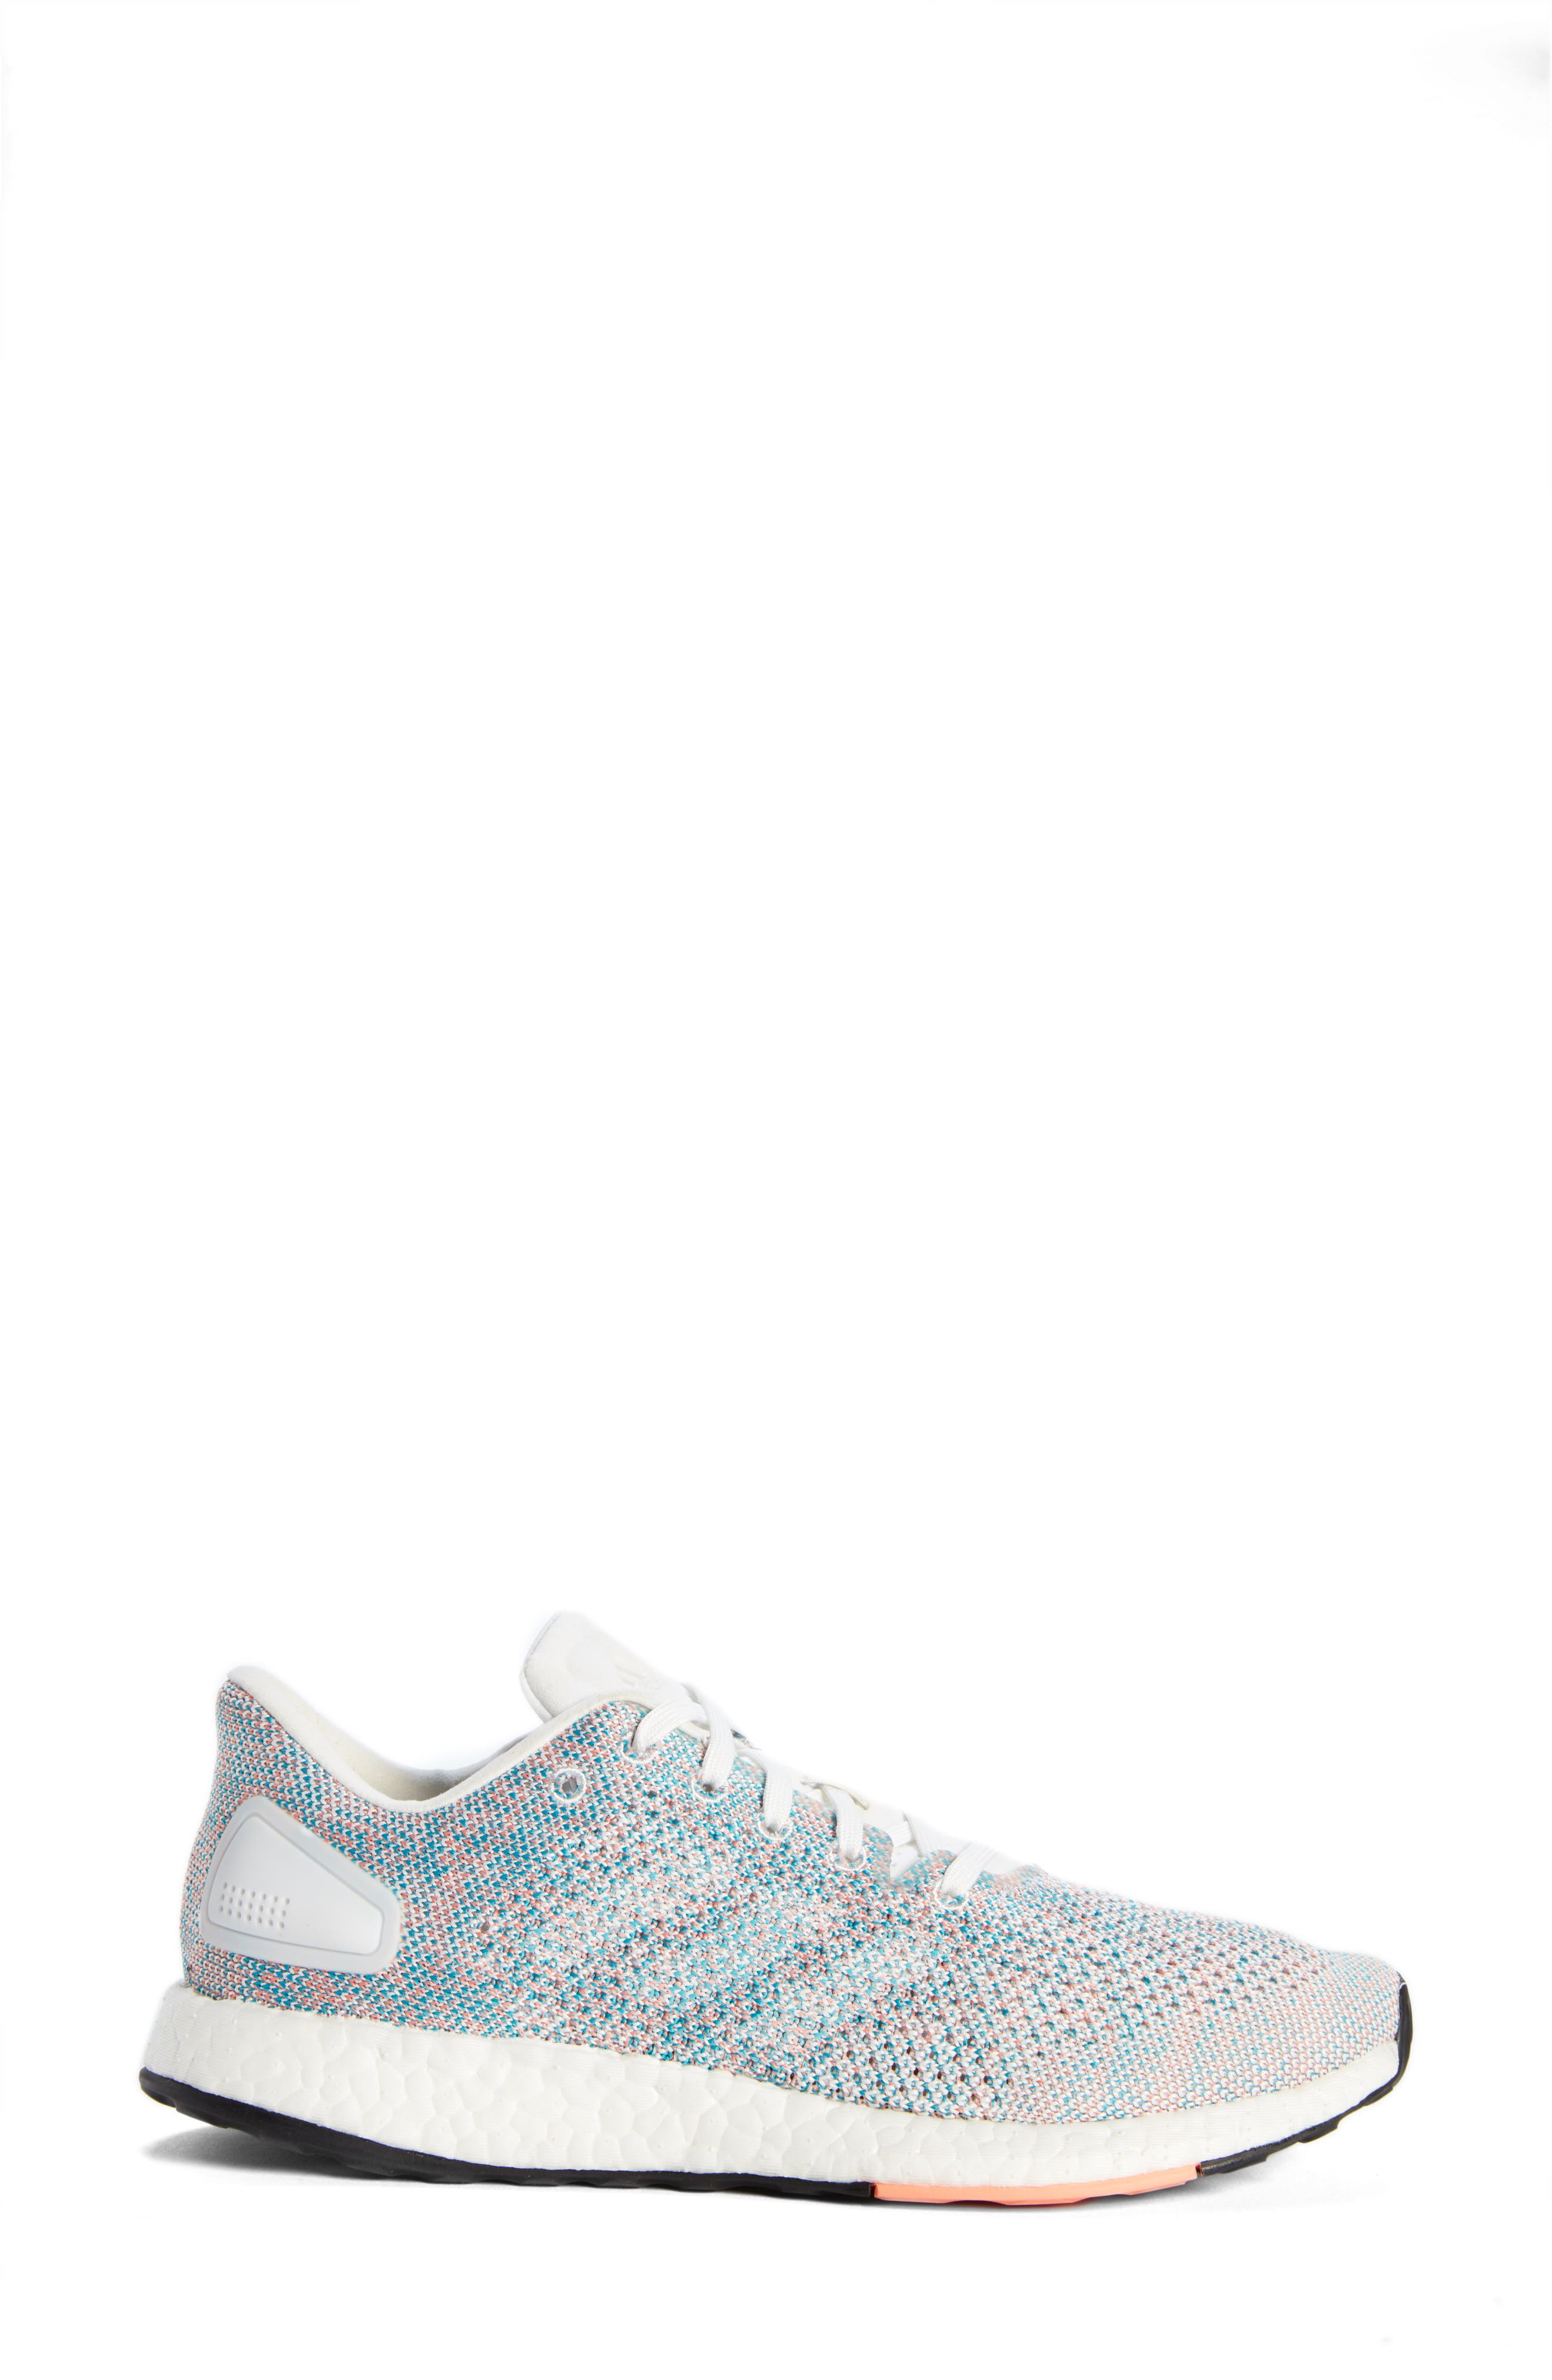 PureBoost DPR Running Shoe,                             Alternate thumbnail 8, color,